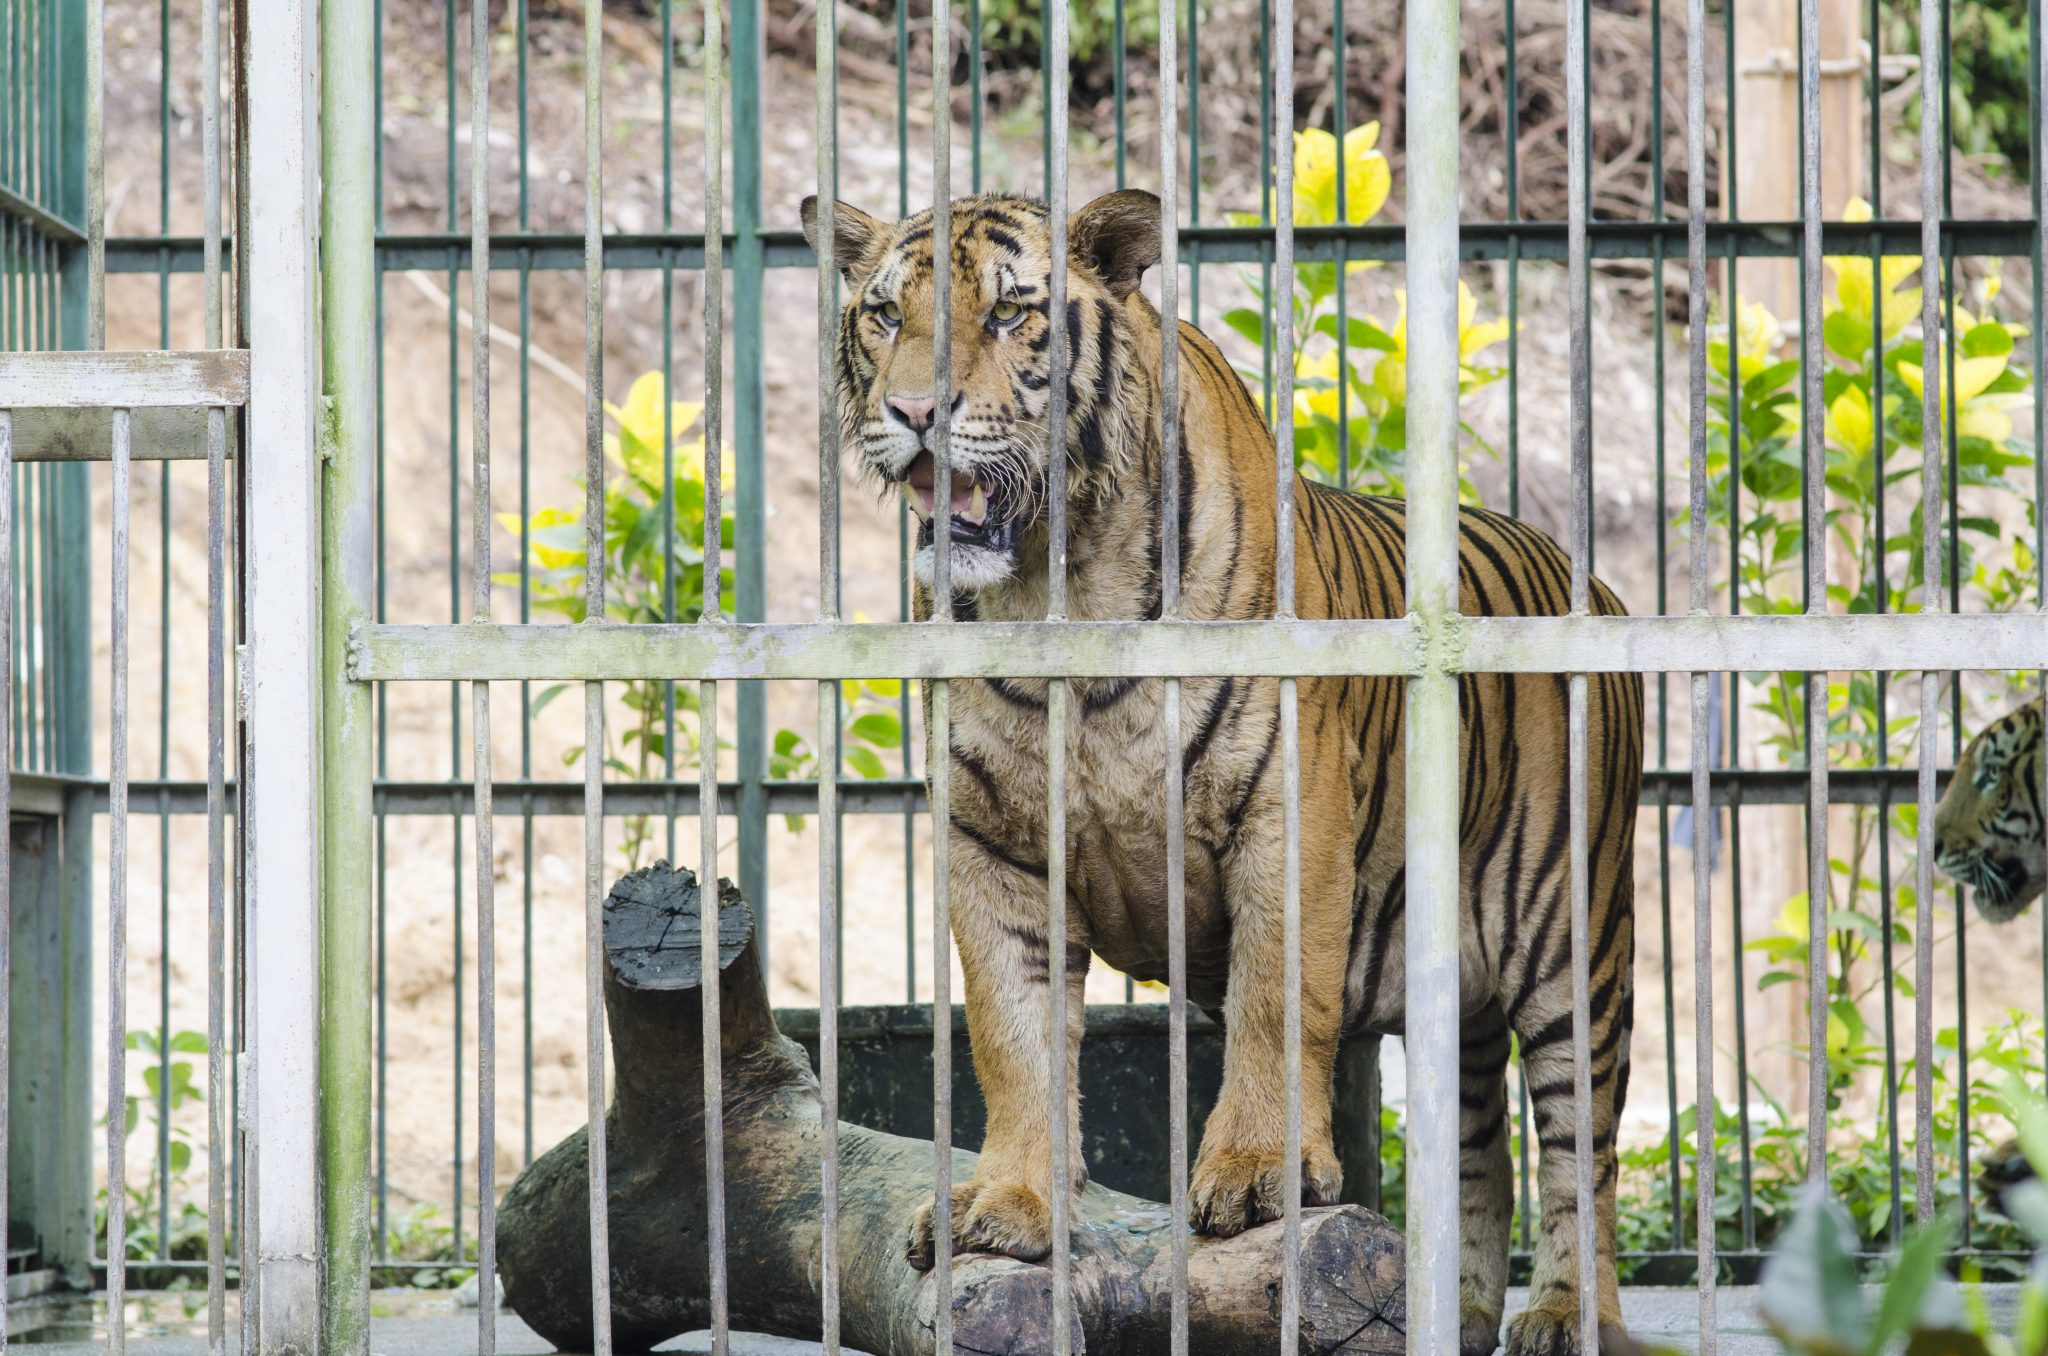 Petition: Captive Tigers at Risk for COVID-19